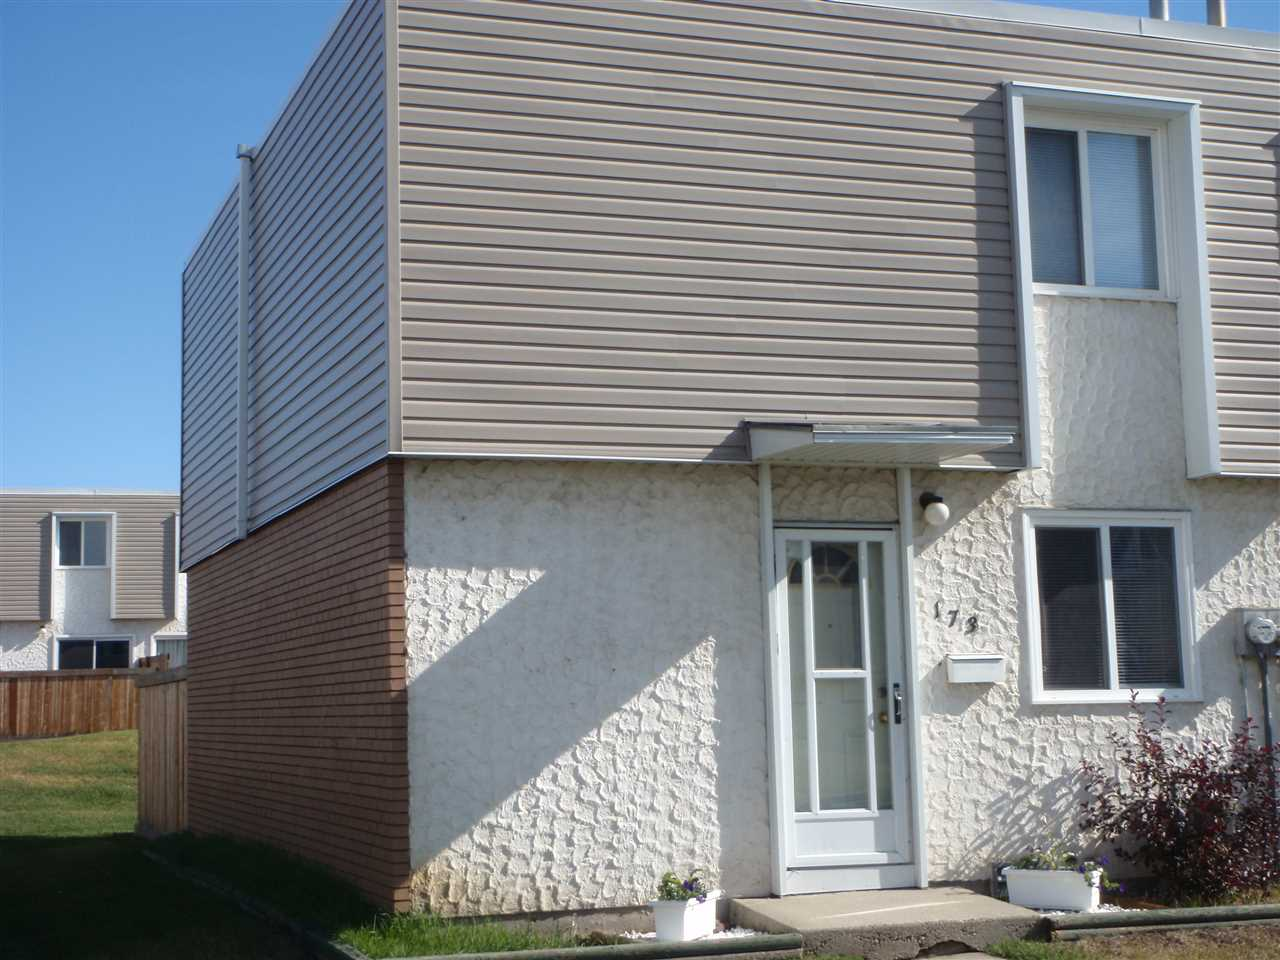 Main Photo: 173 Cornell Court NW in Edmonton: Zone 02 Townhouse for sale : MLS® # E4076021